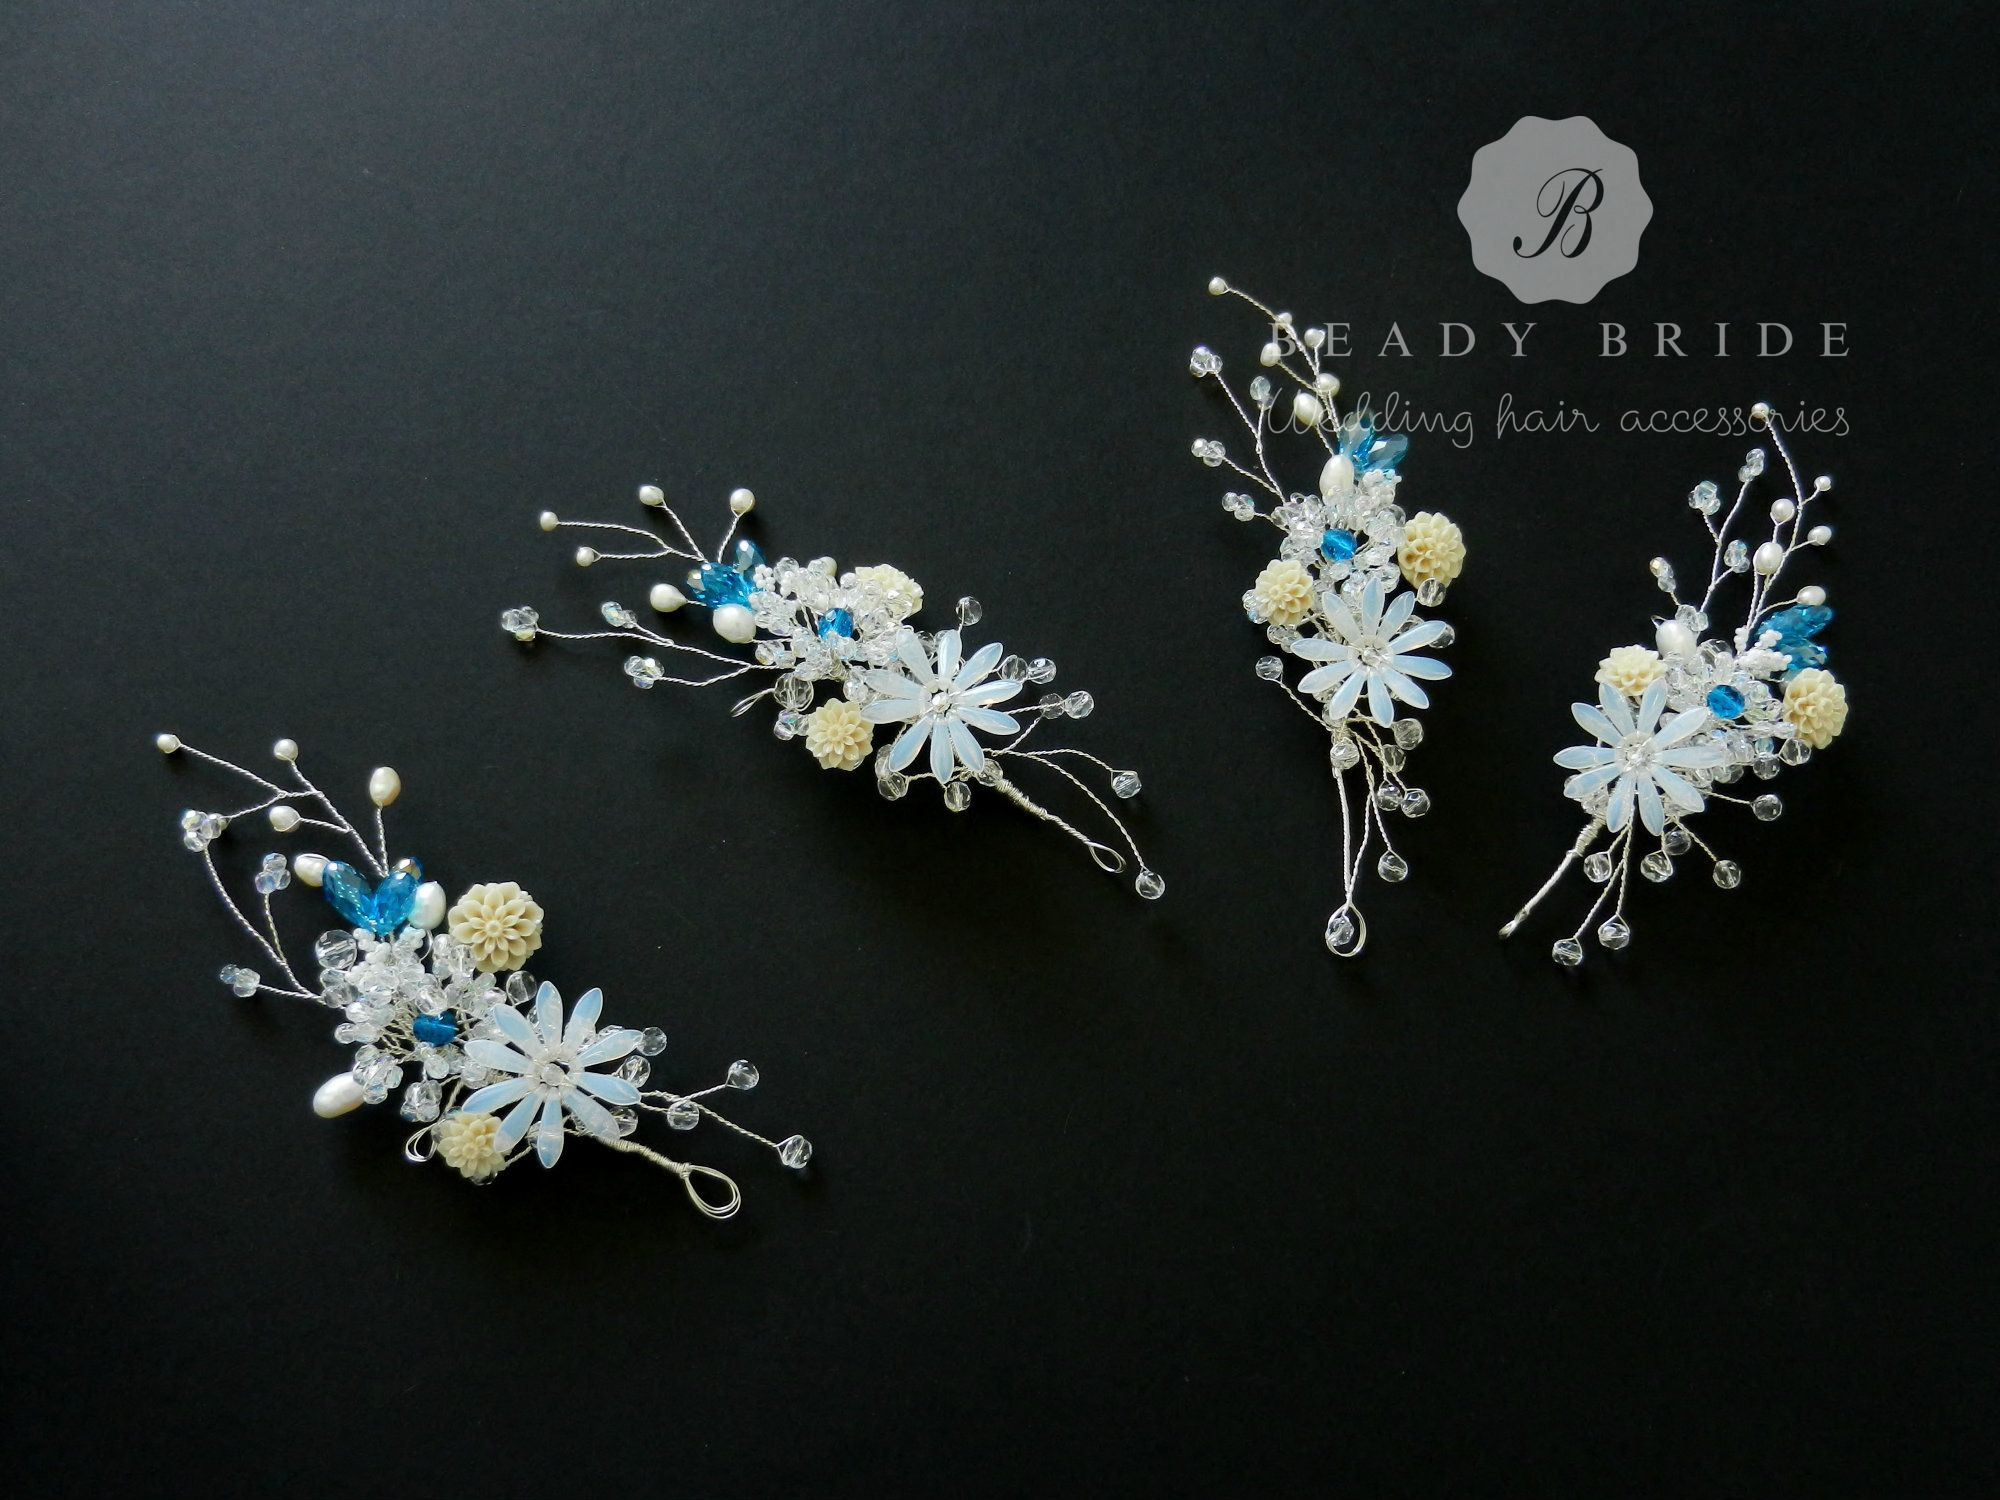 Melanie-bridesmaids hair accessory-by Beady Bride-UK